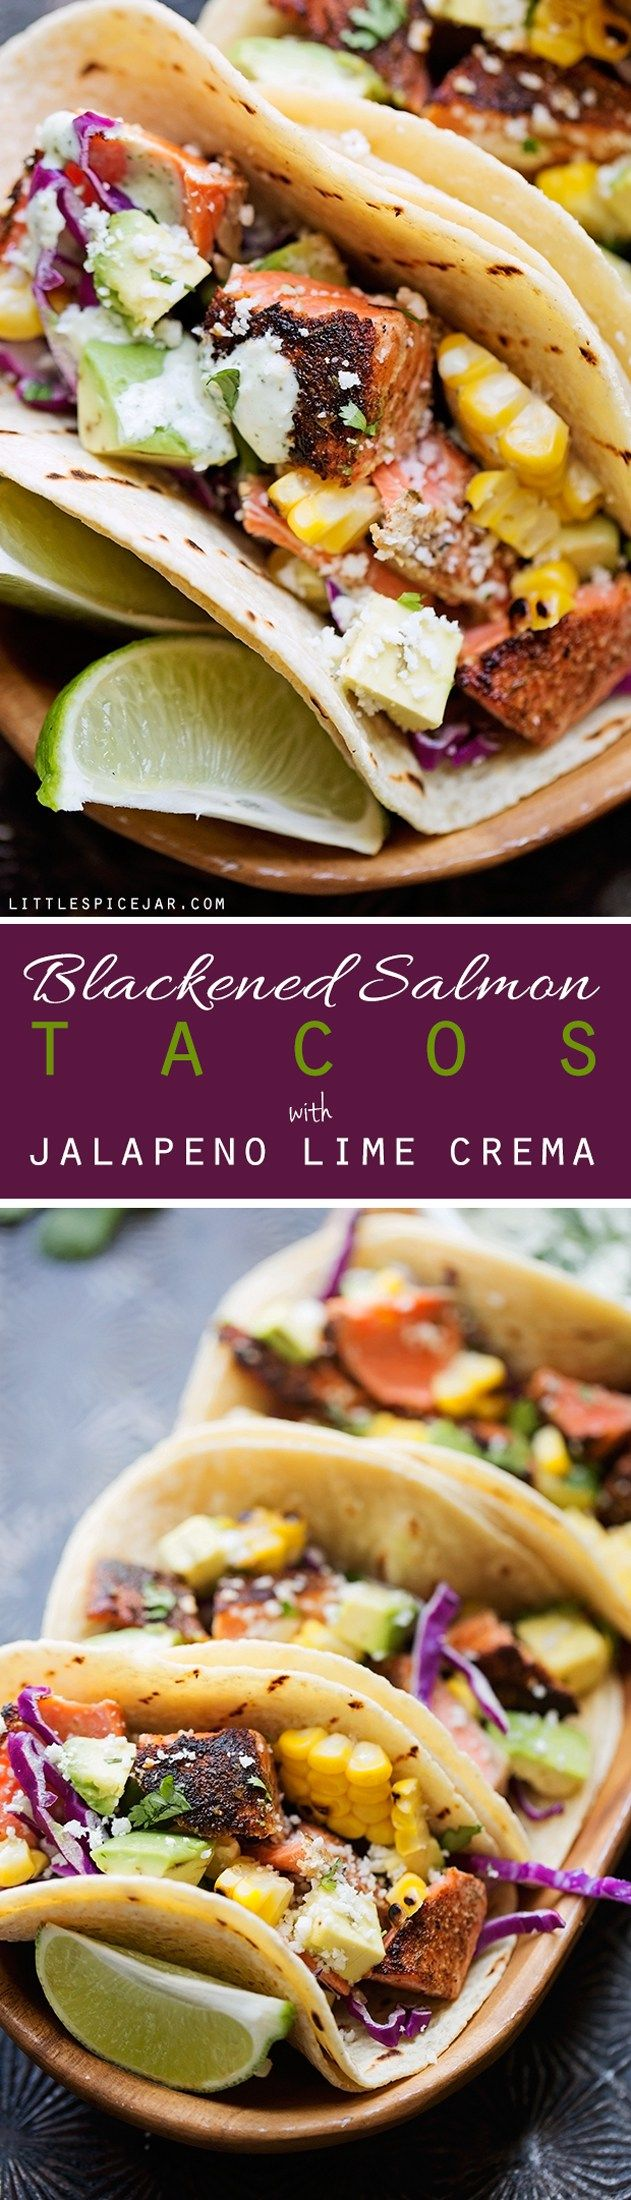 Blackened Salmon Tacos with Jalapeño Lime Crema - Easy Salmon tacos topped with your favorite taco toppings and my jalapeño lime crema! #fishtacos #blackenedsalmontacos #salmontacos #blackedfishtacos | Littlespicejar.com